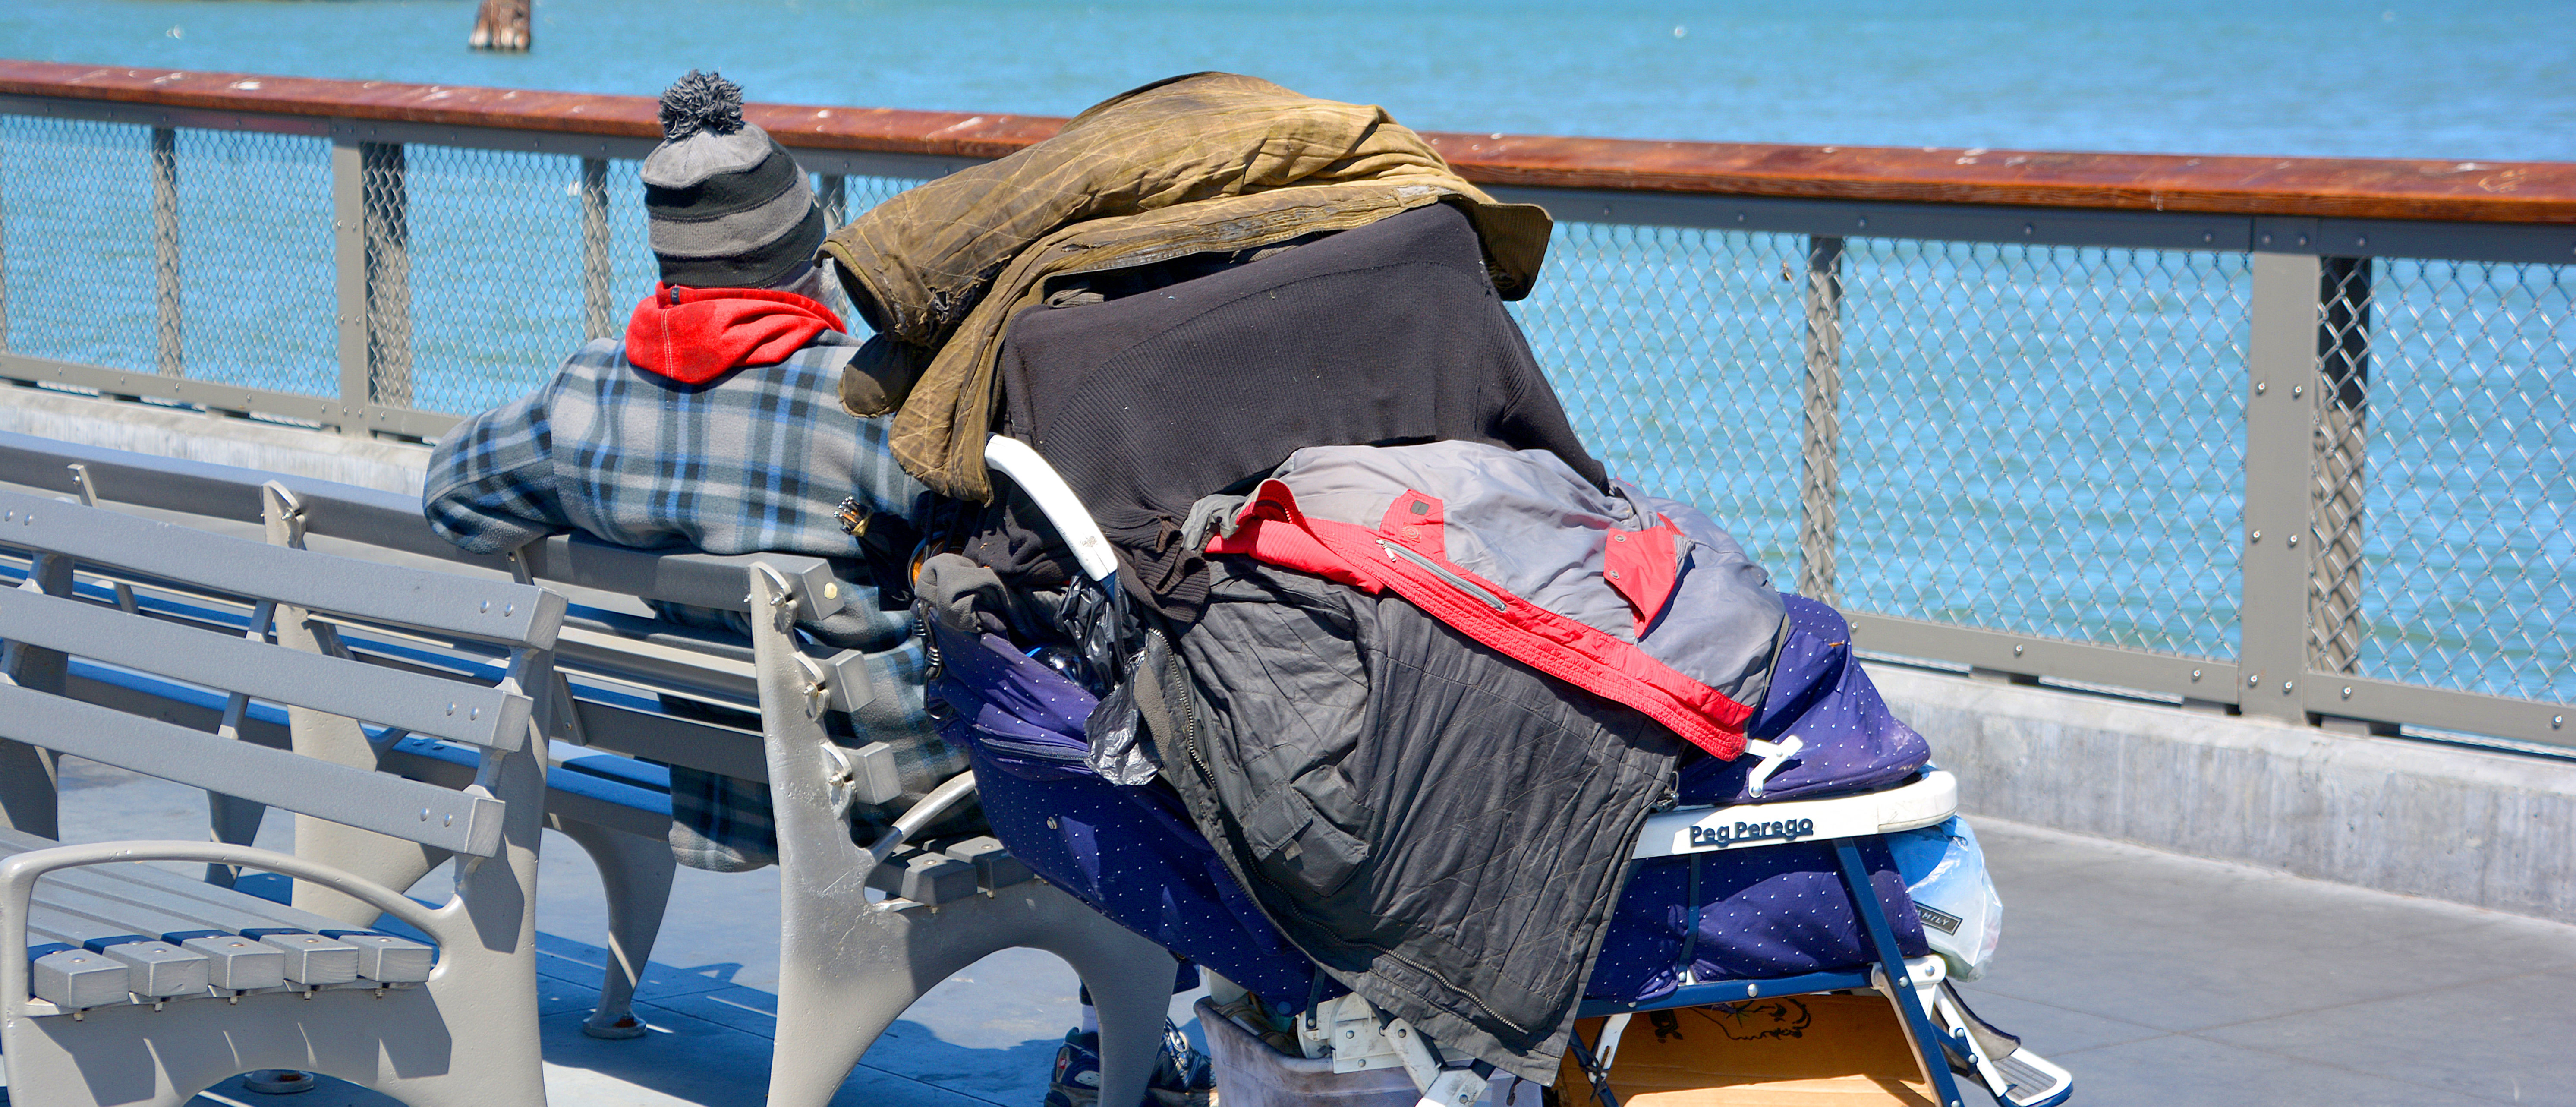 Homeless has one of the Golden State most intractable problems. In San Francisco words like crisis and epidemic often describe the vast number of people on the street. (Shutterstock/Meunierd)